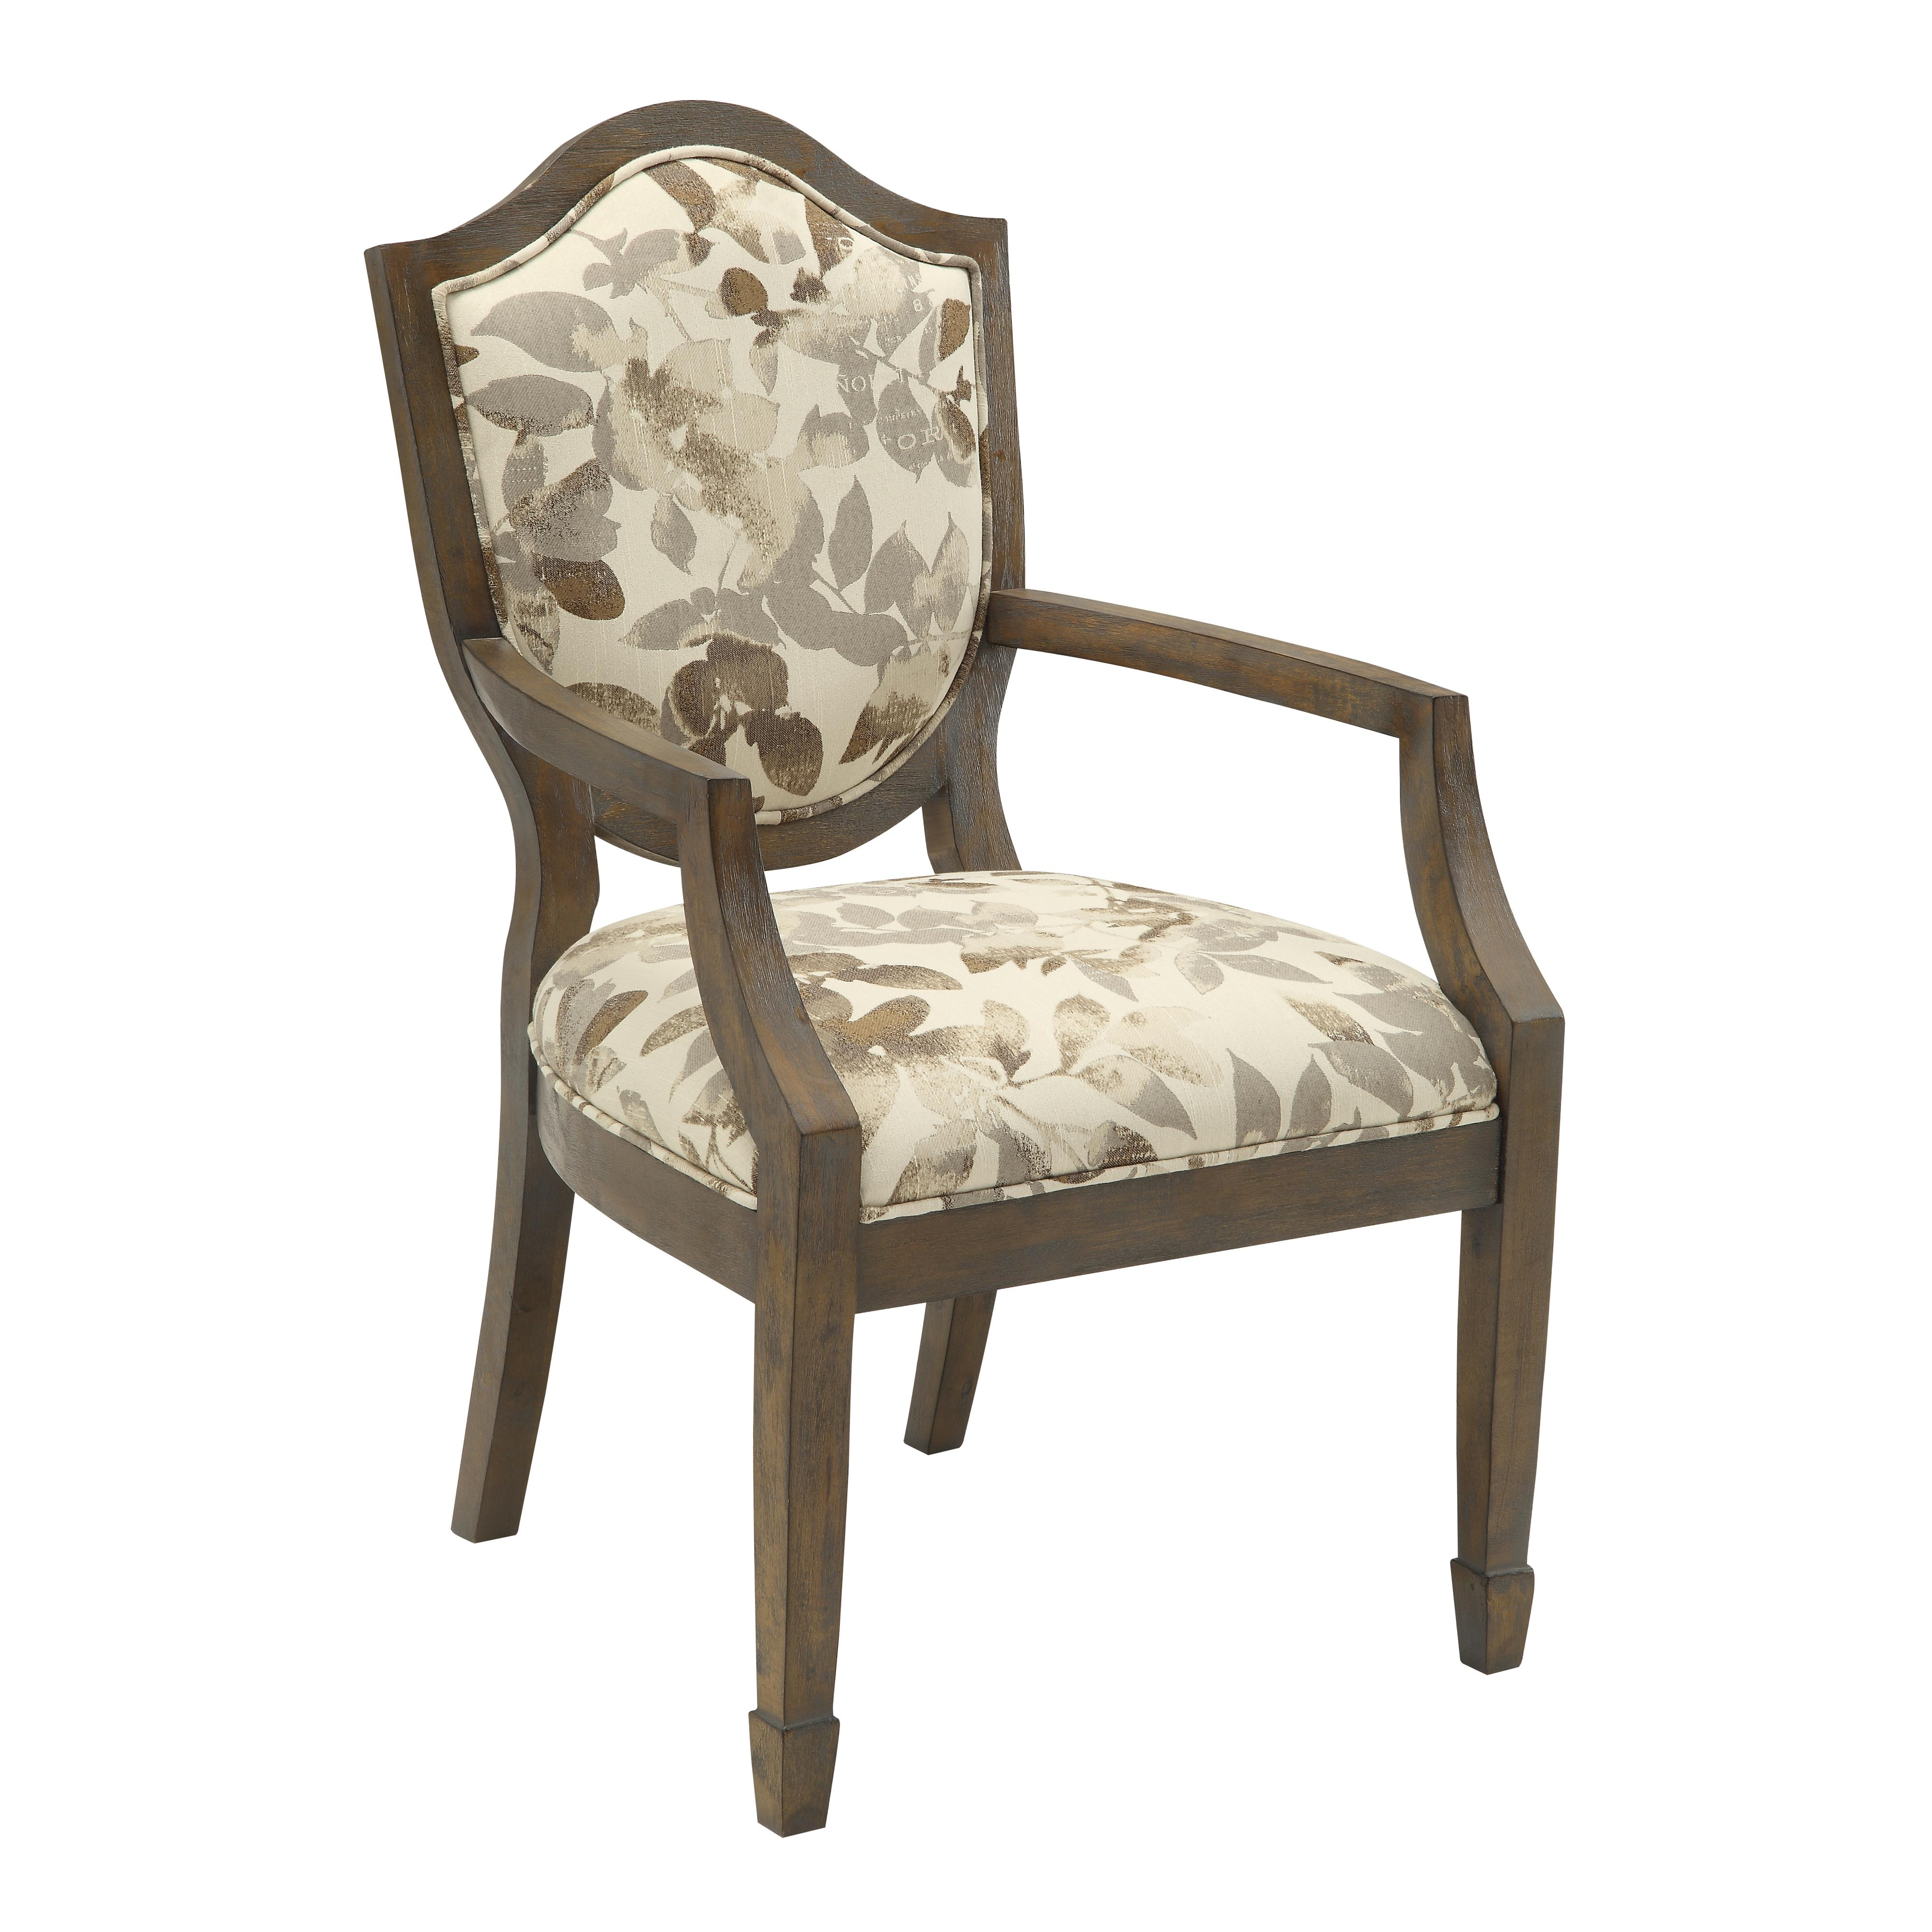 Coast to Coast Imports Coastal Accents Accent Chair - Item Number: 70733